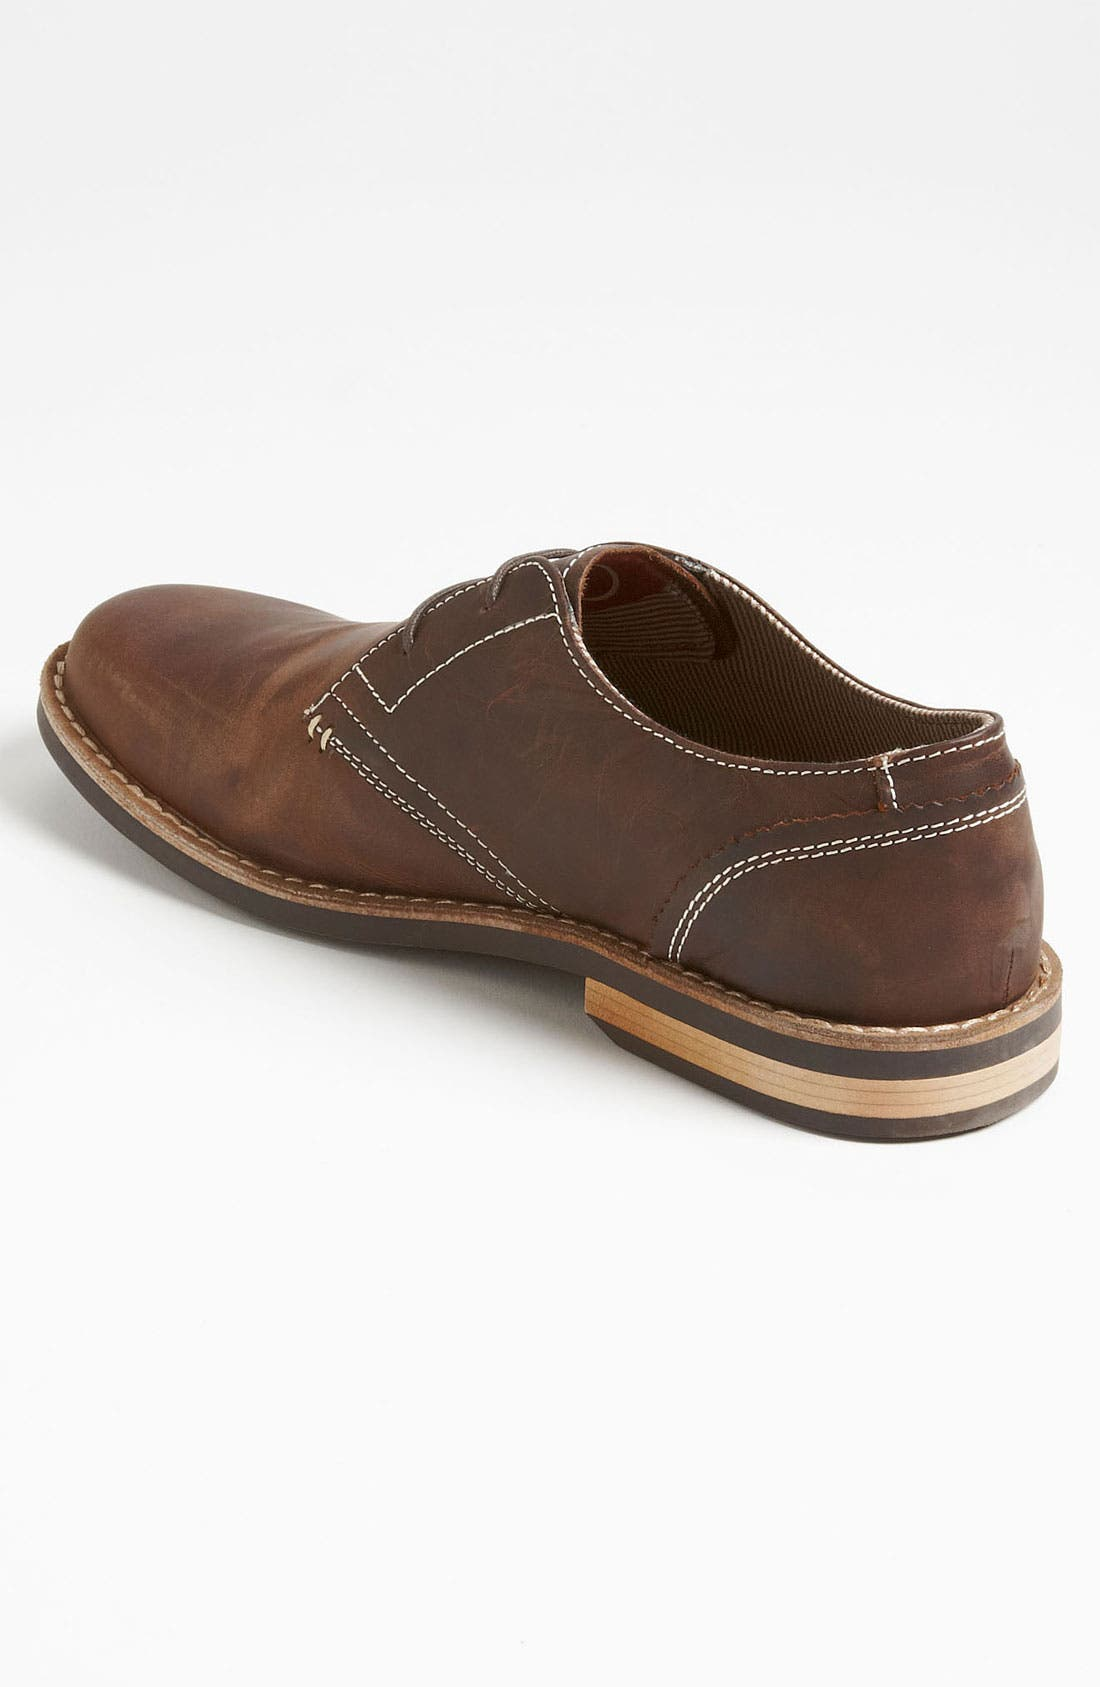 Alternate Image 2  - Original Penguin 'Waylon' Buck Shoe